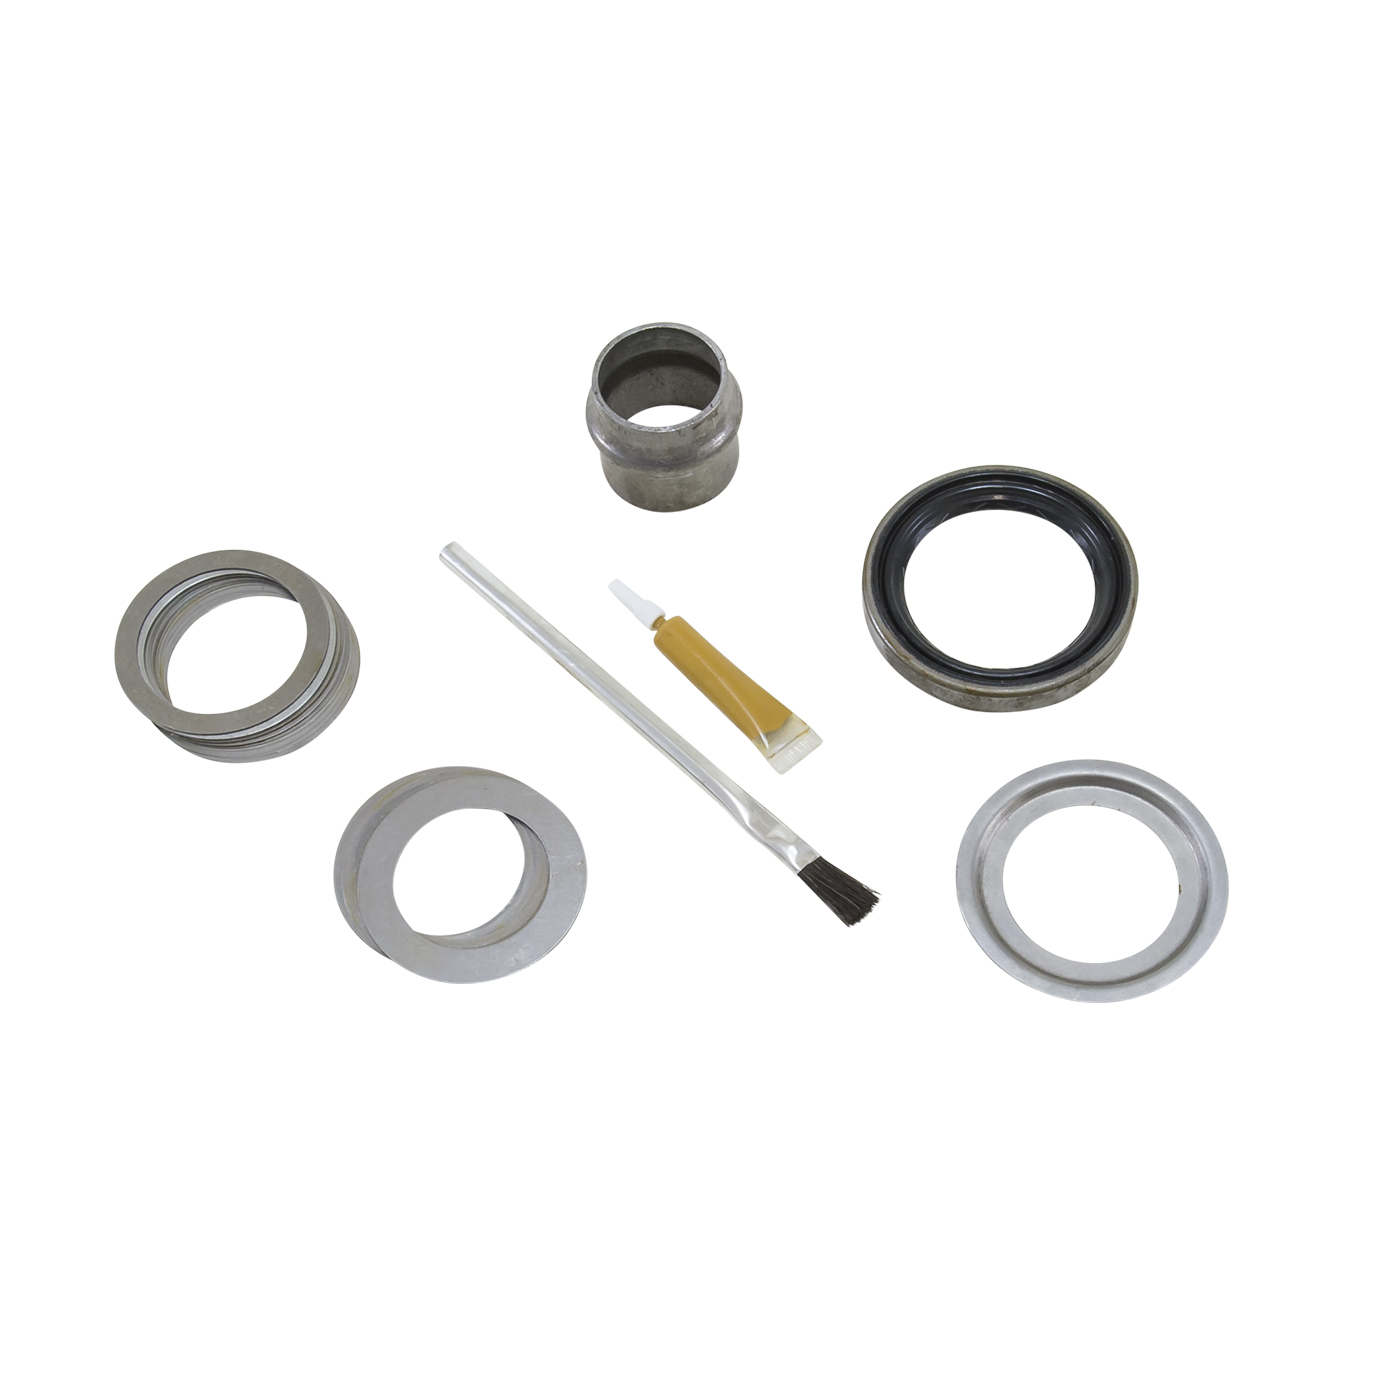 MK D25 - Yukon Minor install kit for Dana 25 differential